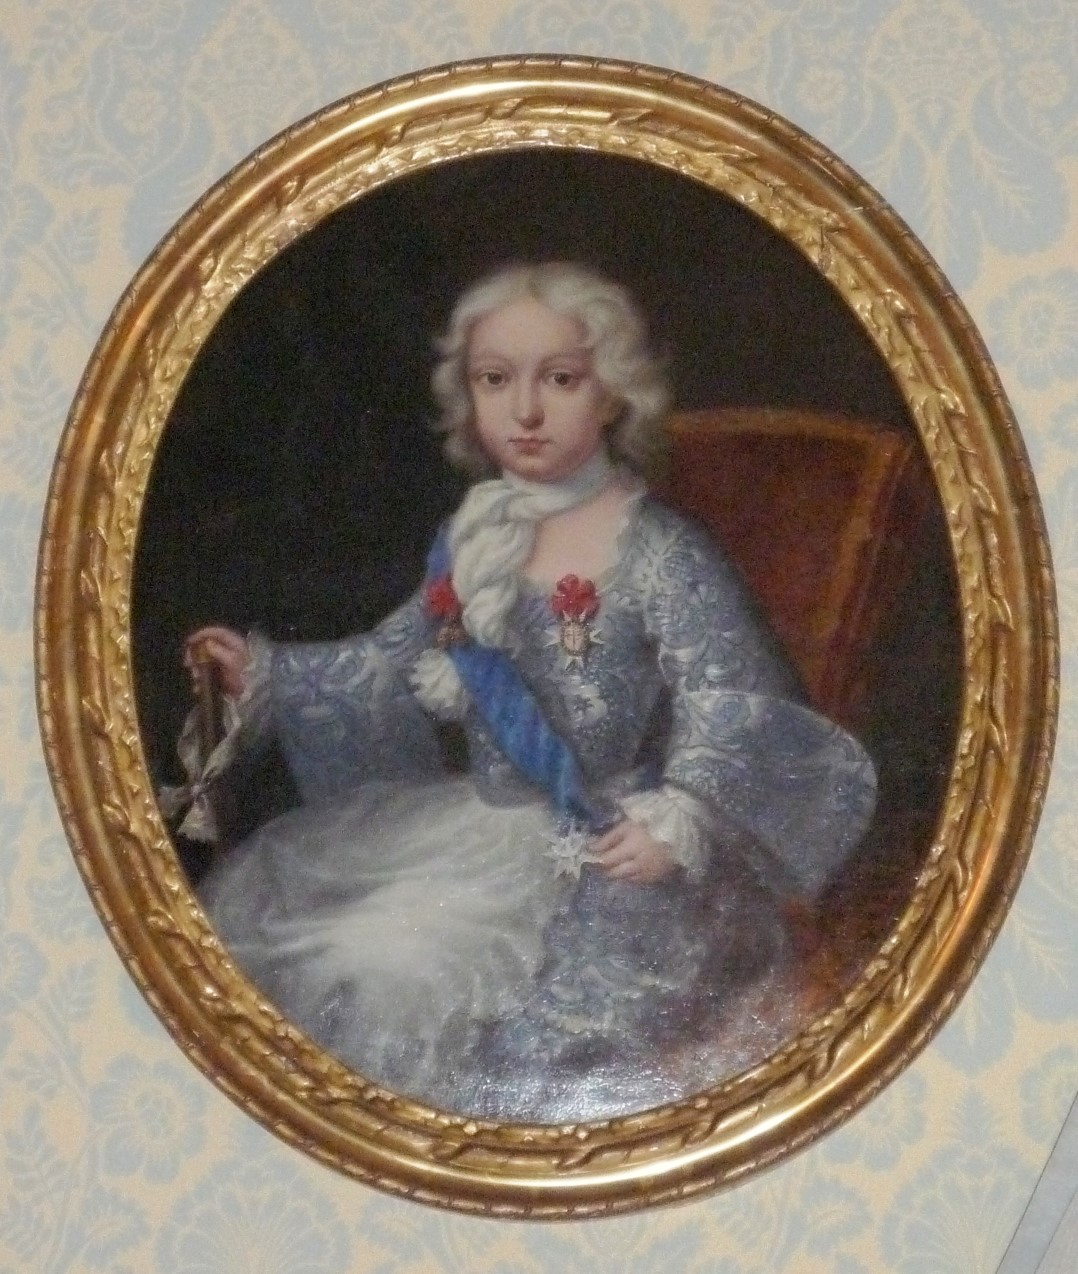 A Portrait of a Prince, French School, mid 18th Century.